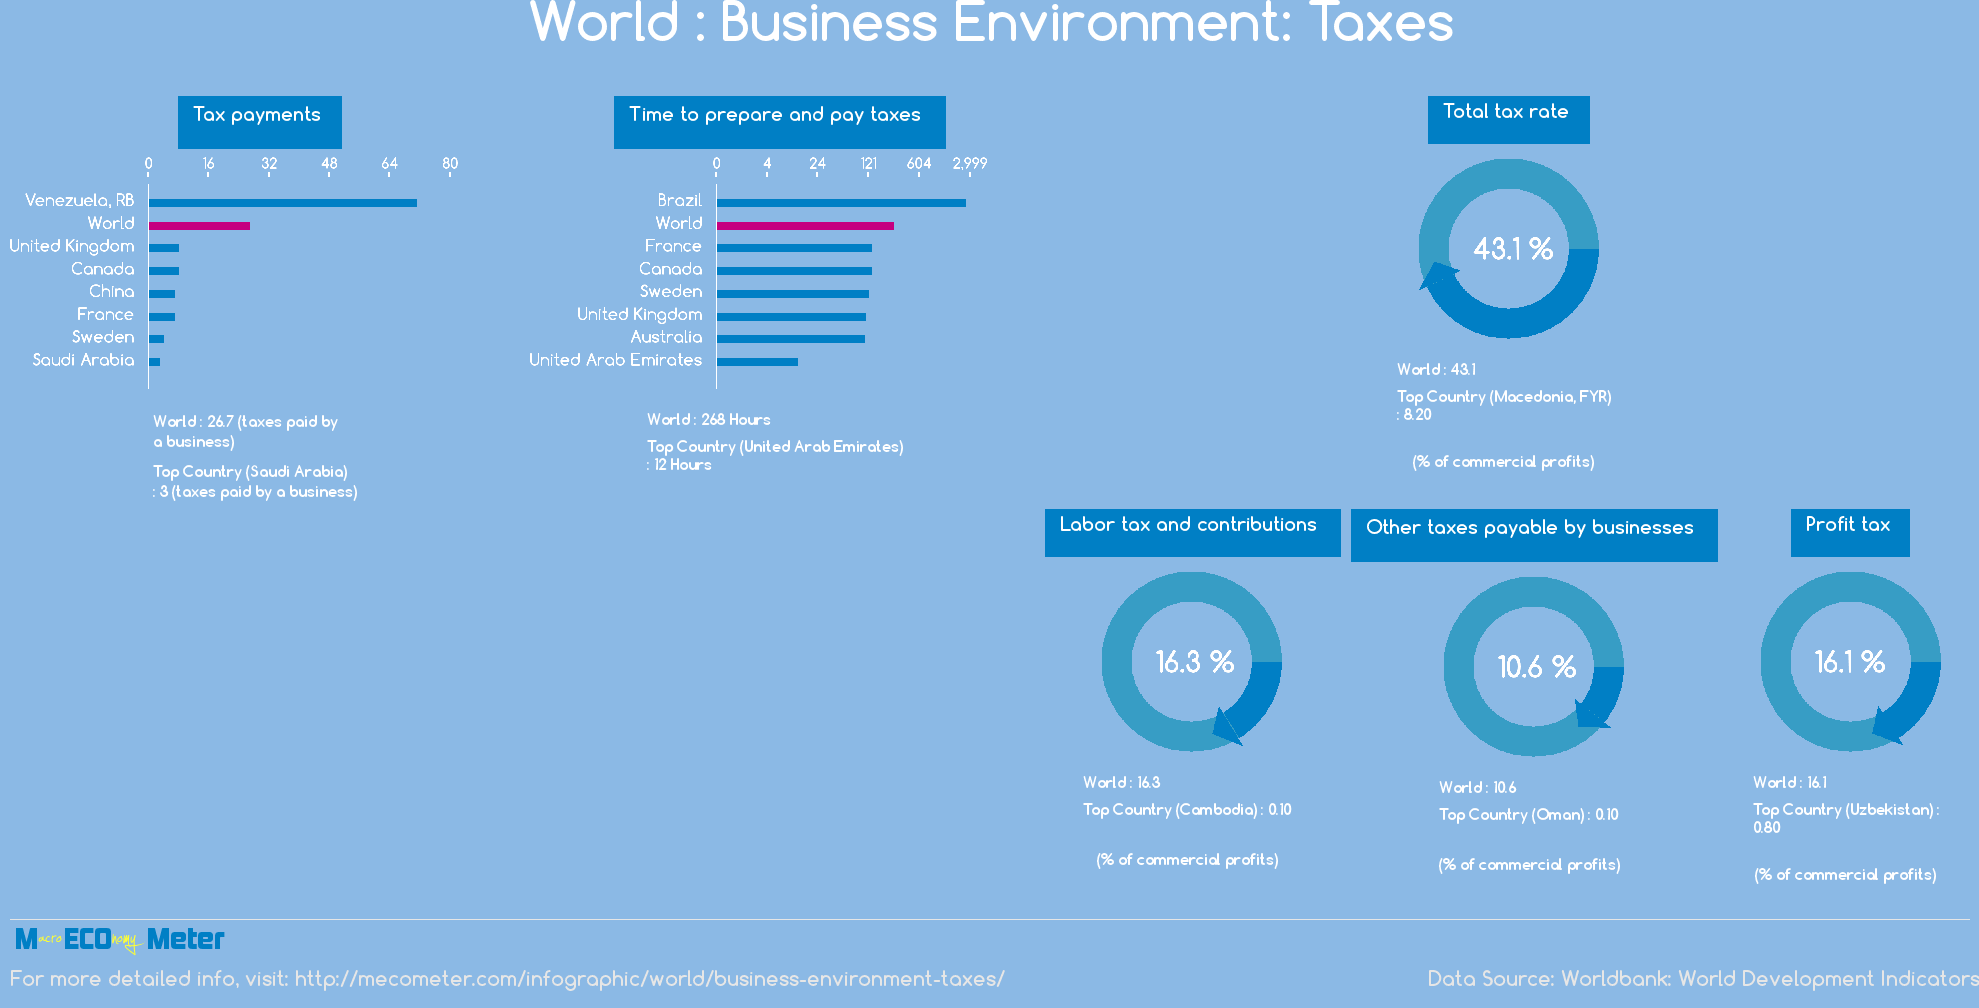 World : Business Environment: Taxes